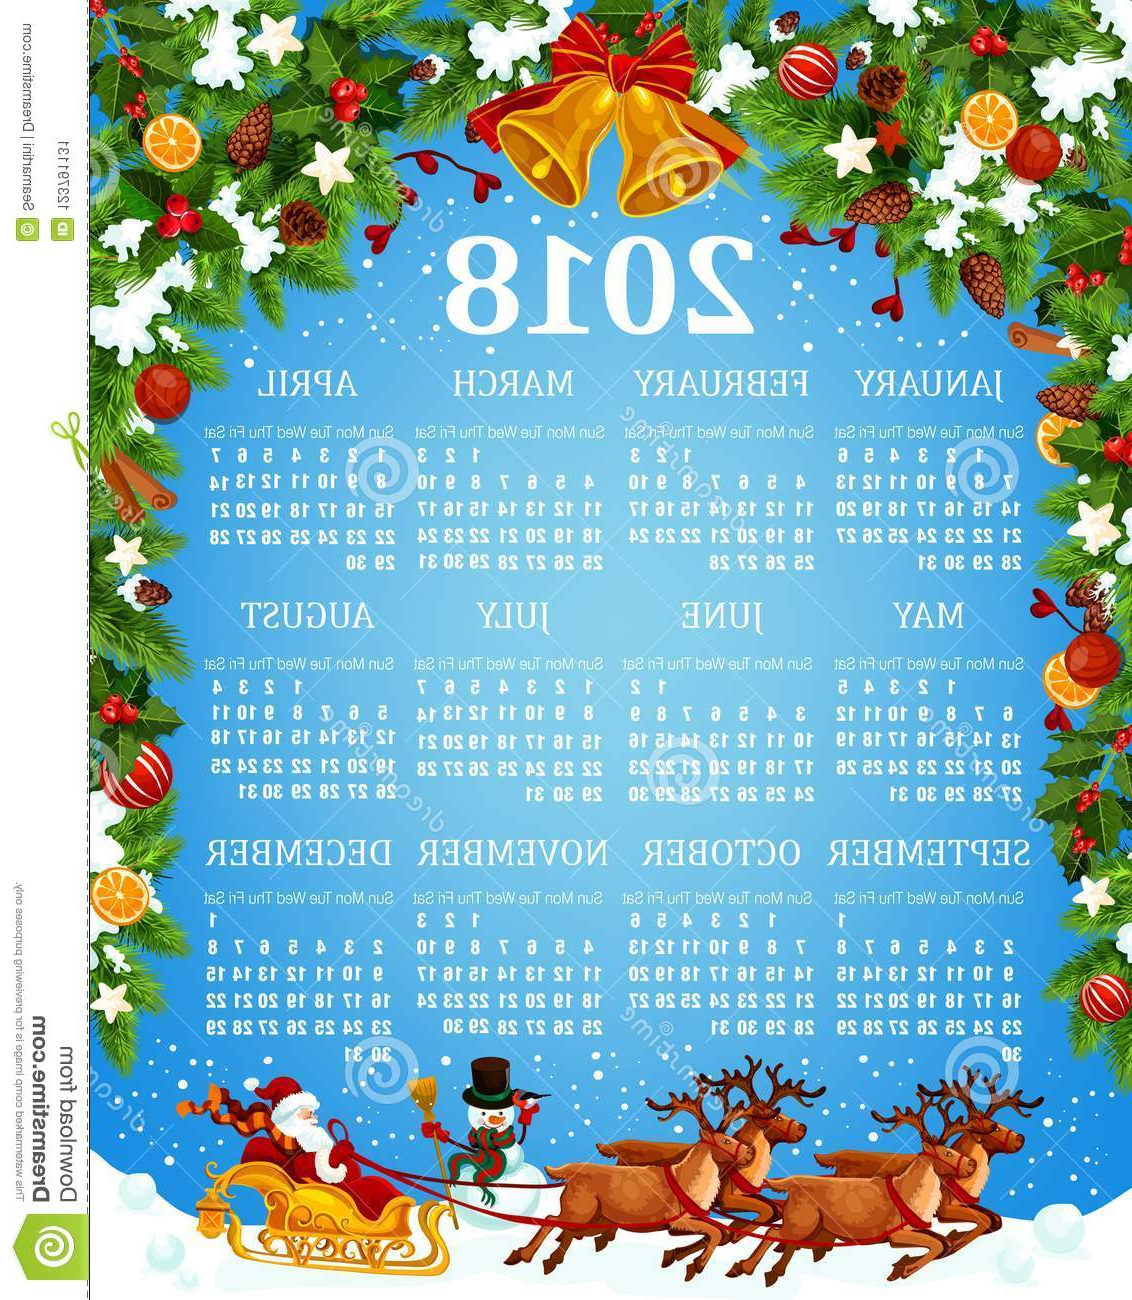 2018 Yearly Calendar Template D0dg Calendar Template with Xmas and New Year Symbols Stock